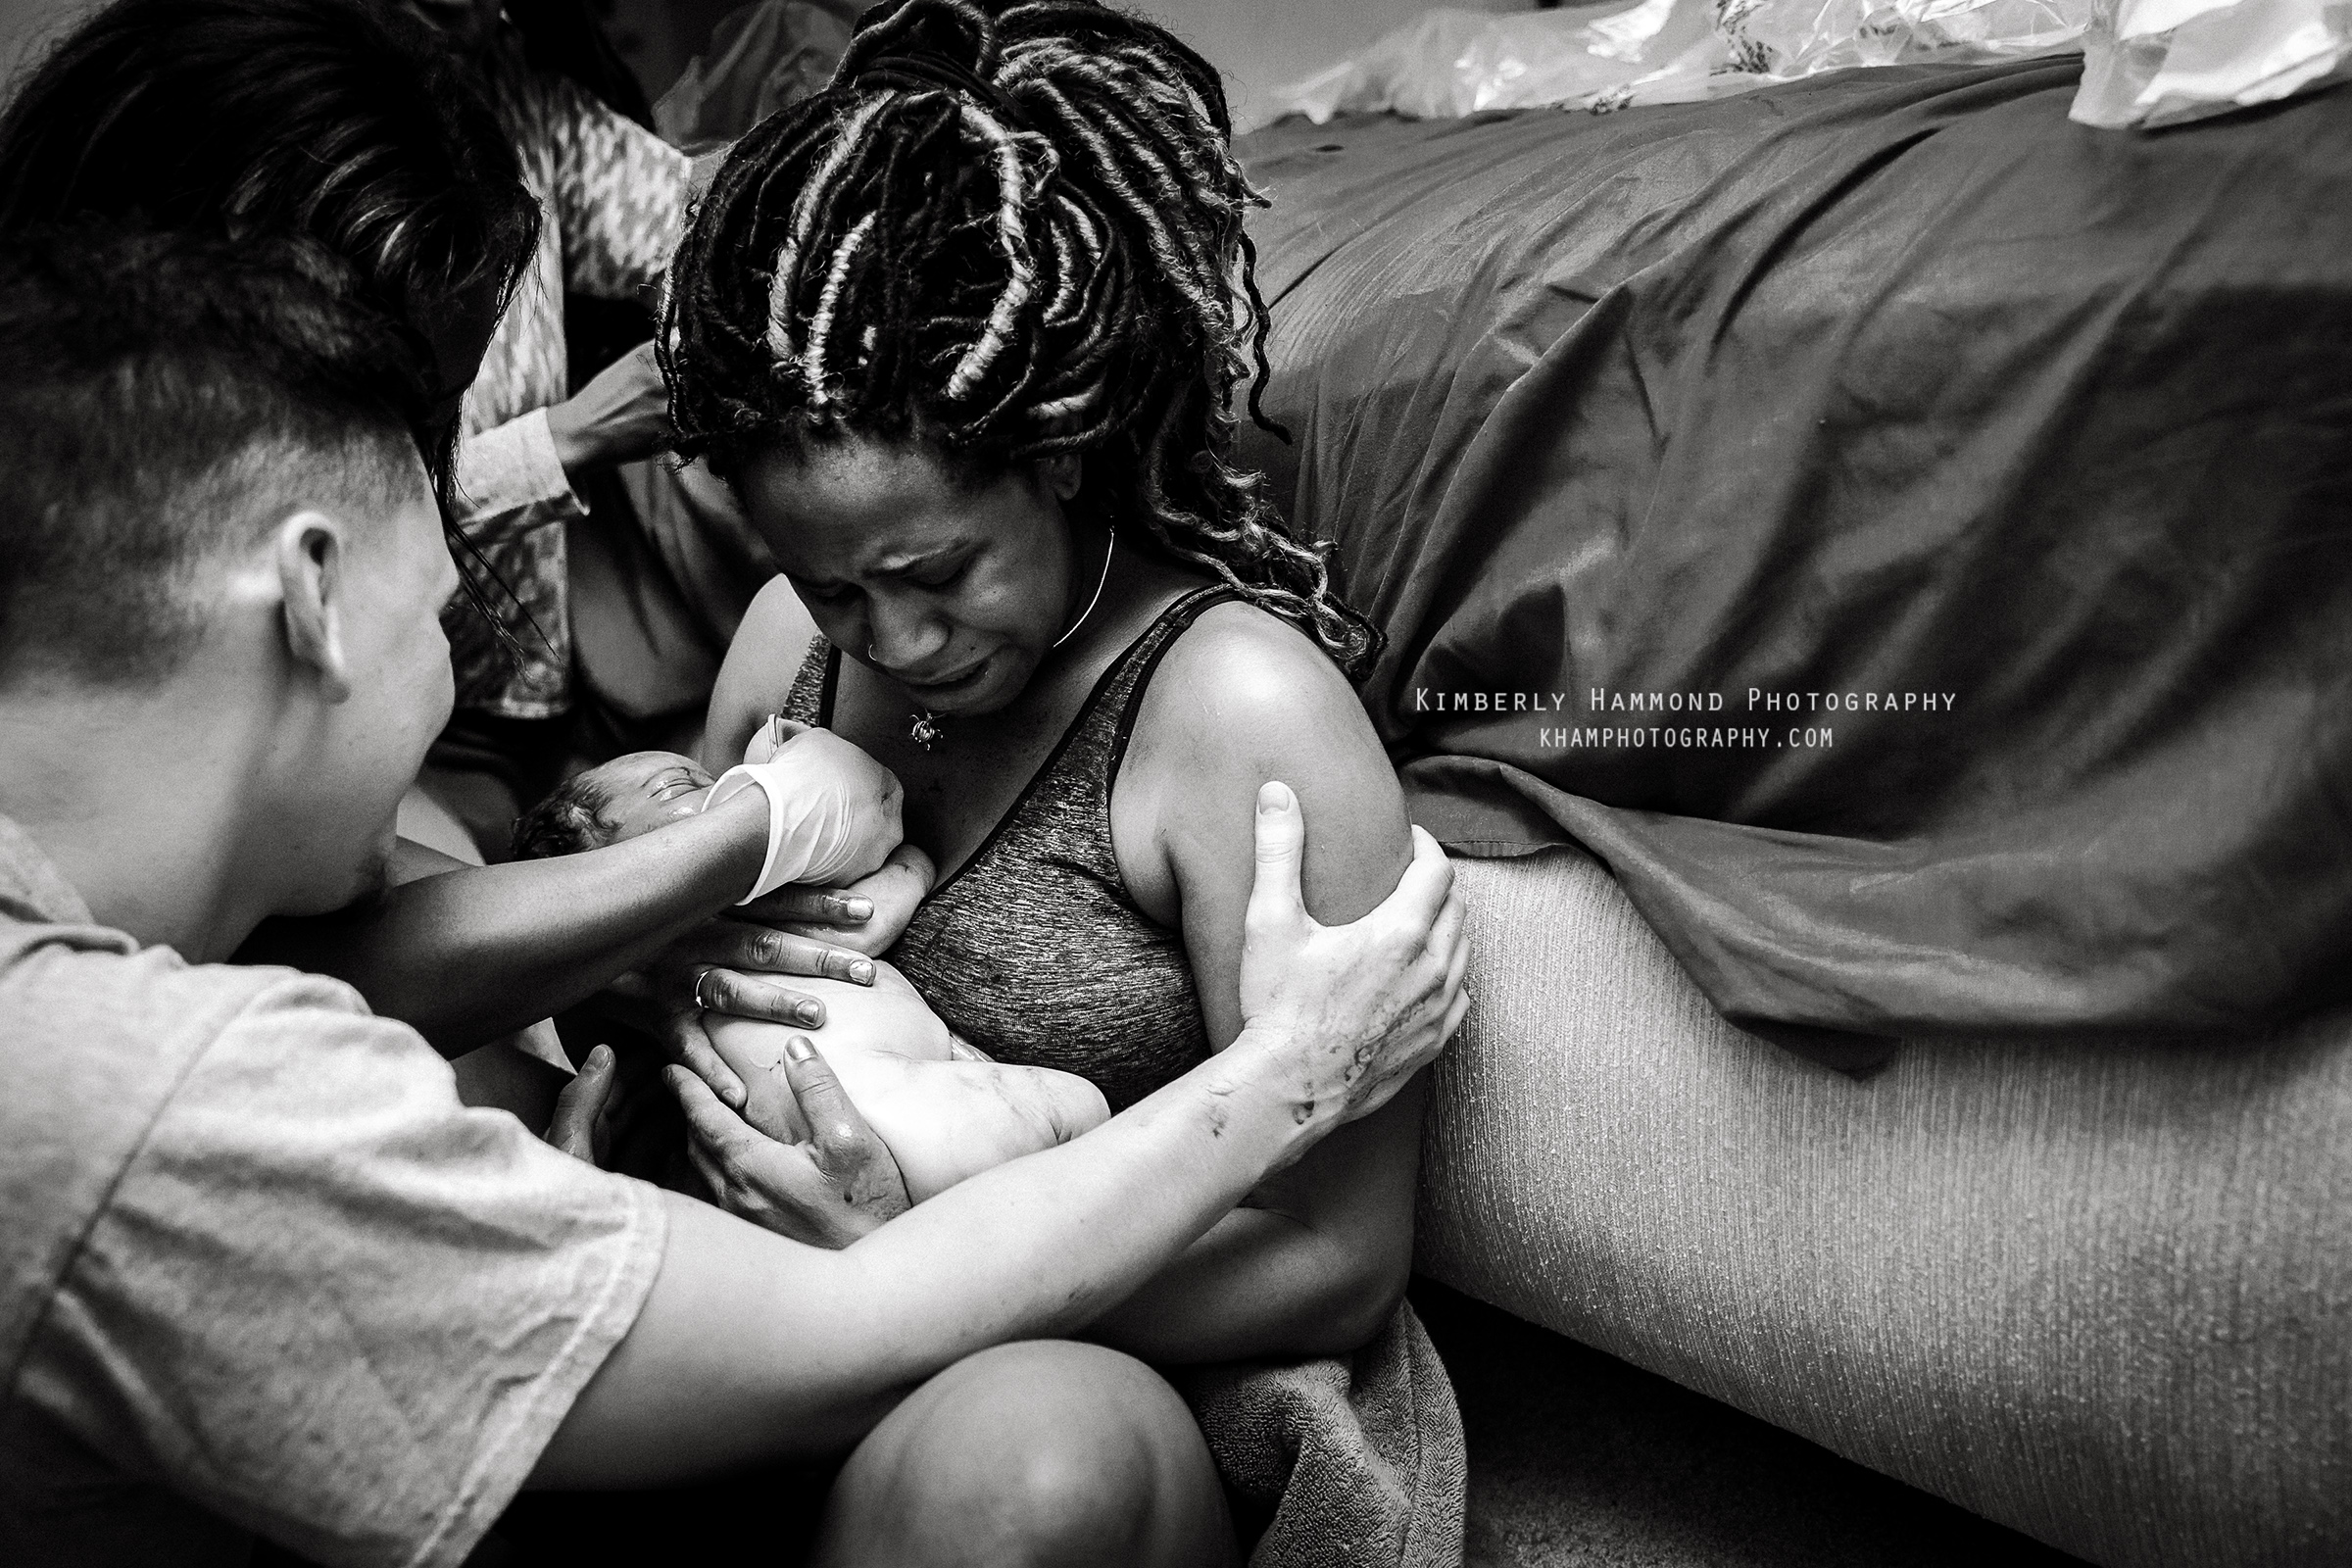 Dad excitedly embraces mom after their baby was born at their homebirth in Fort Worth, TX.